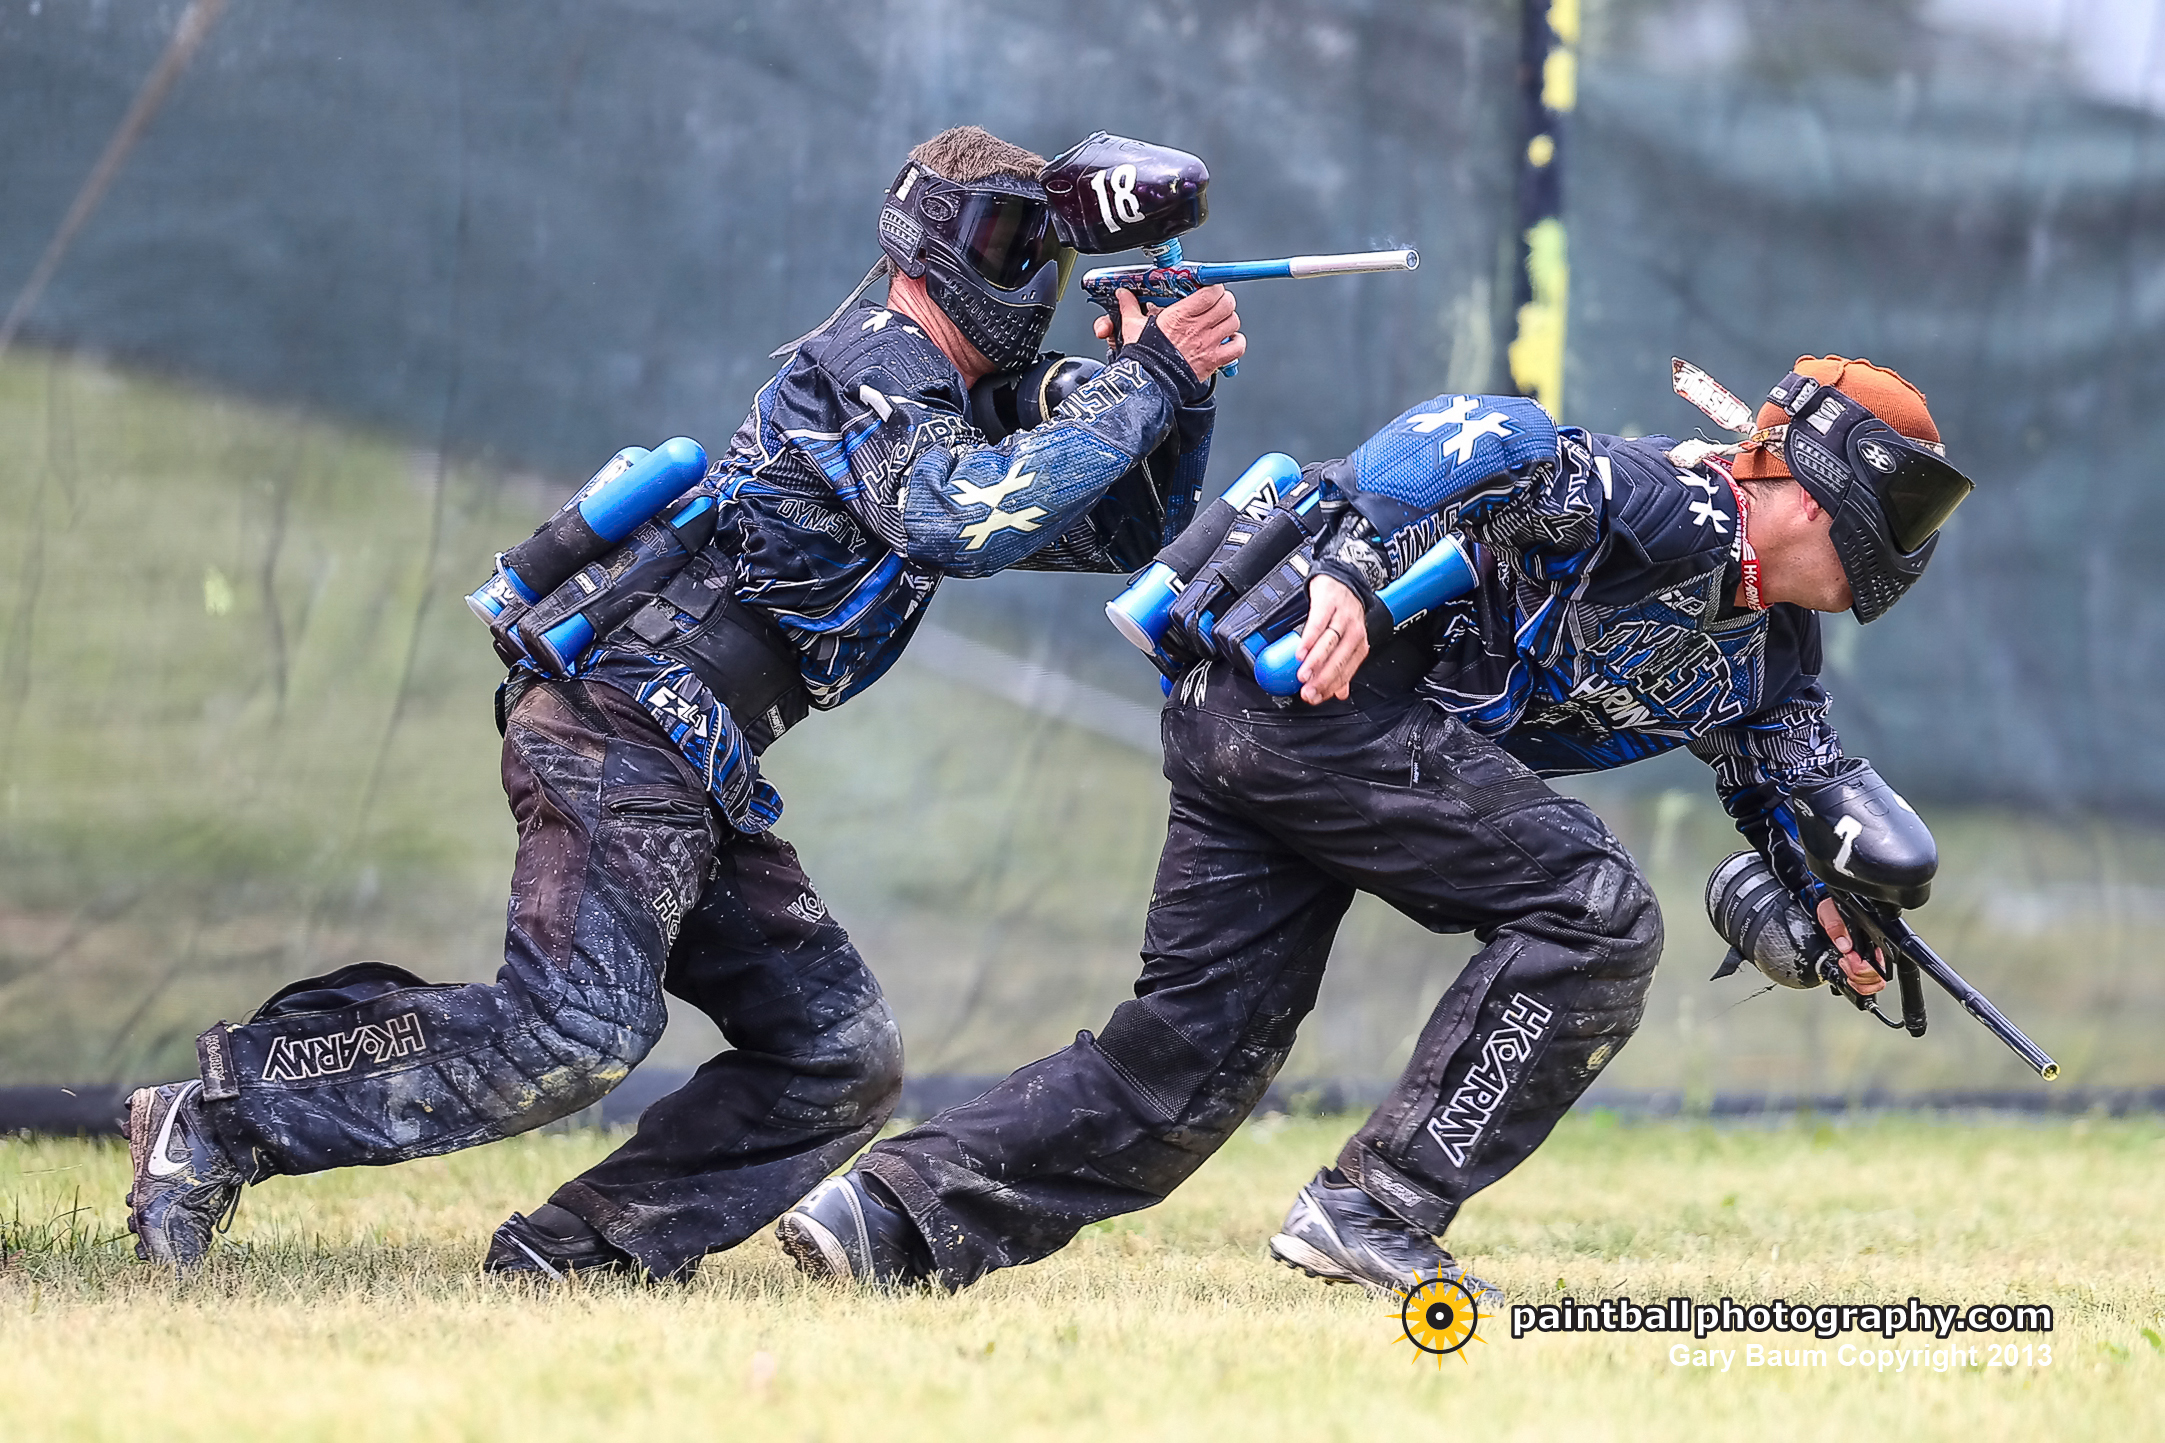 Dynasty Skips NPPL Windy City Open to Prep for PSP West Coast Open